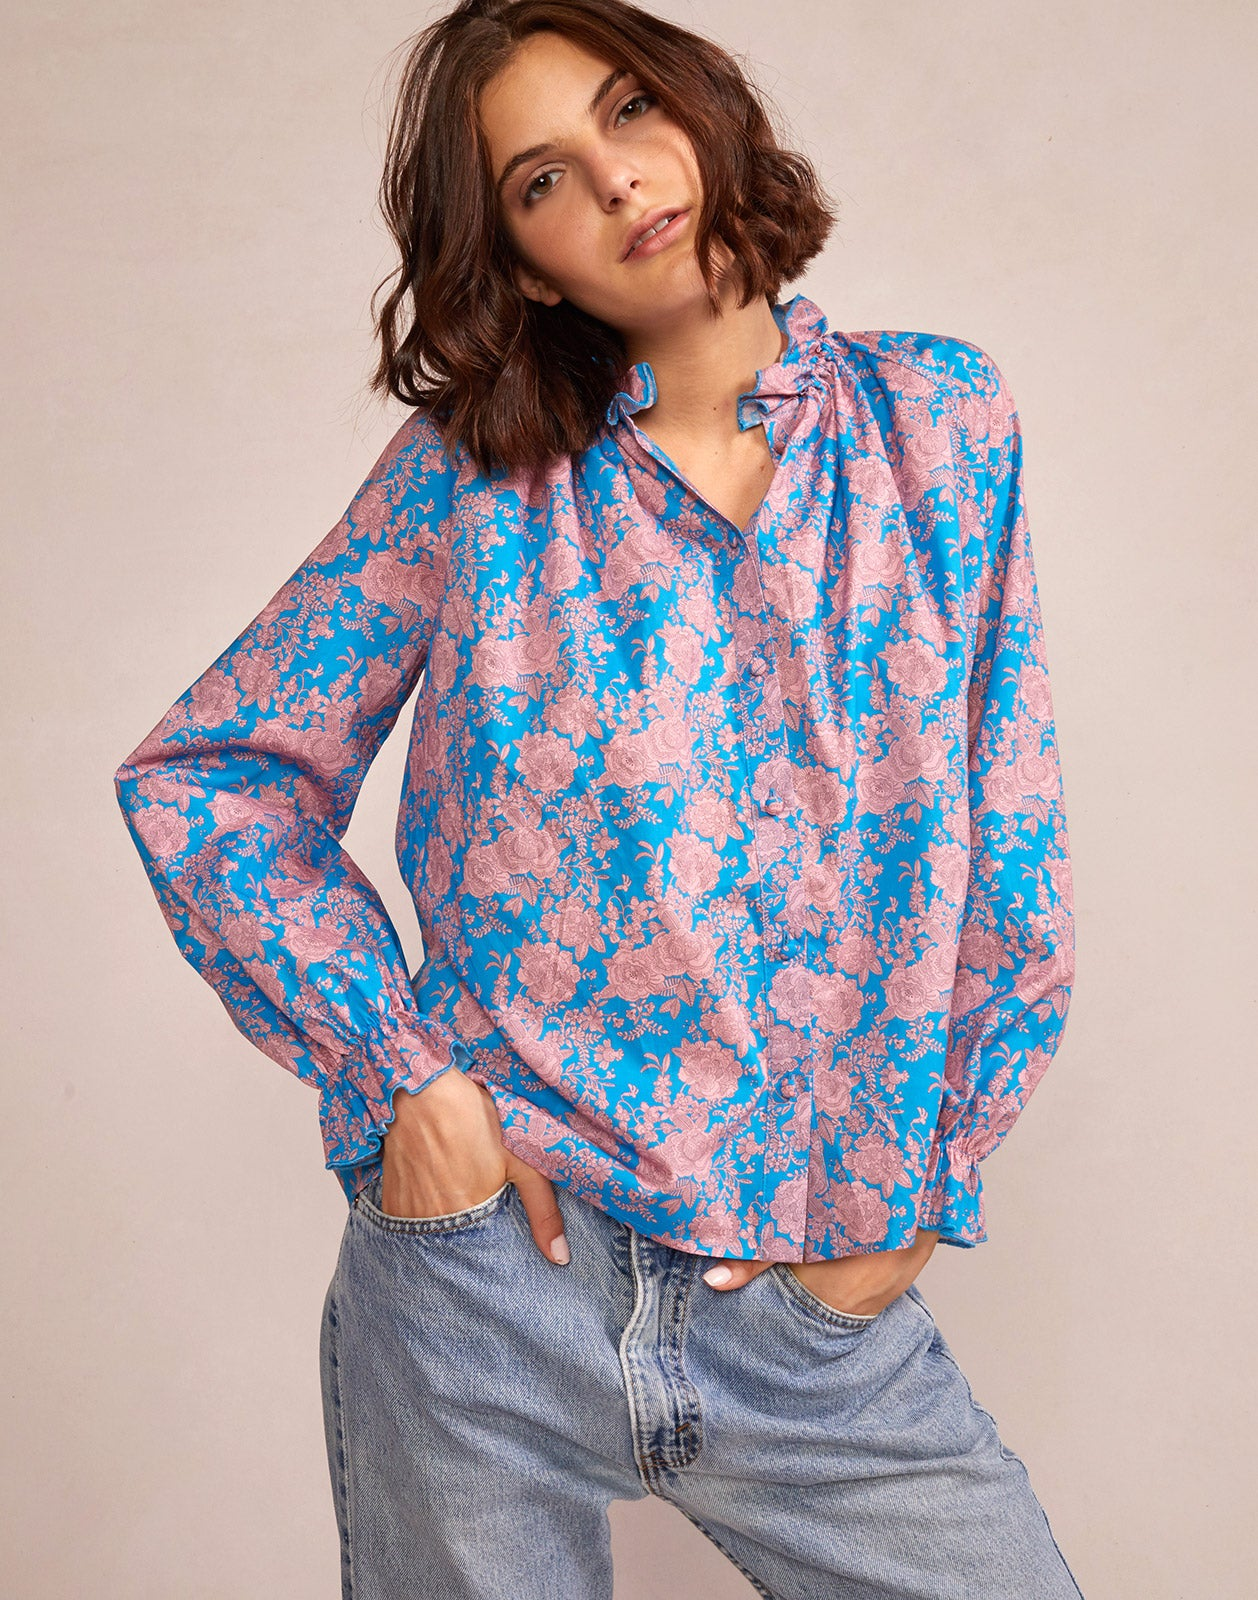 Model wearing Floral Cotton Waterfall Top